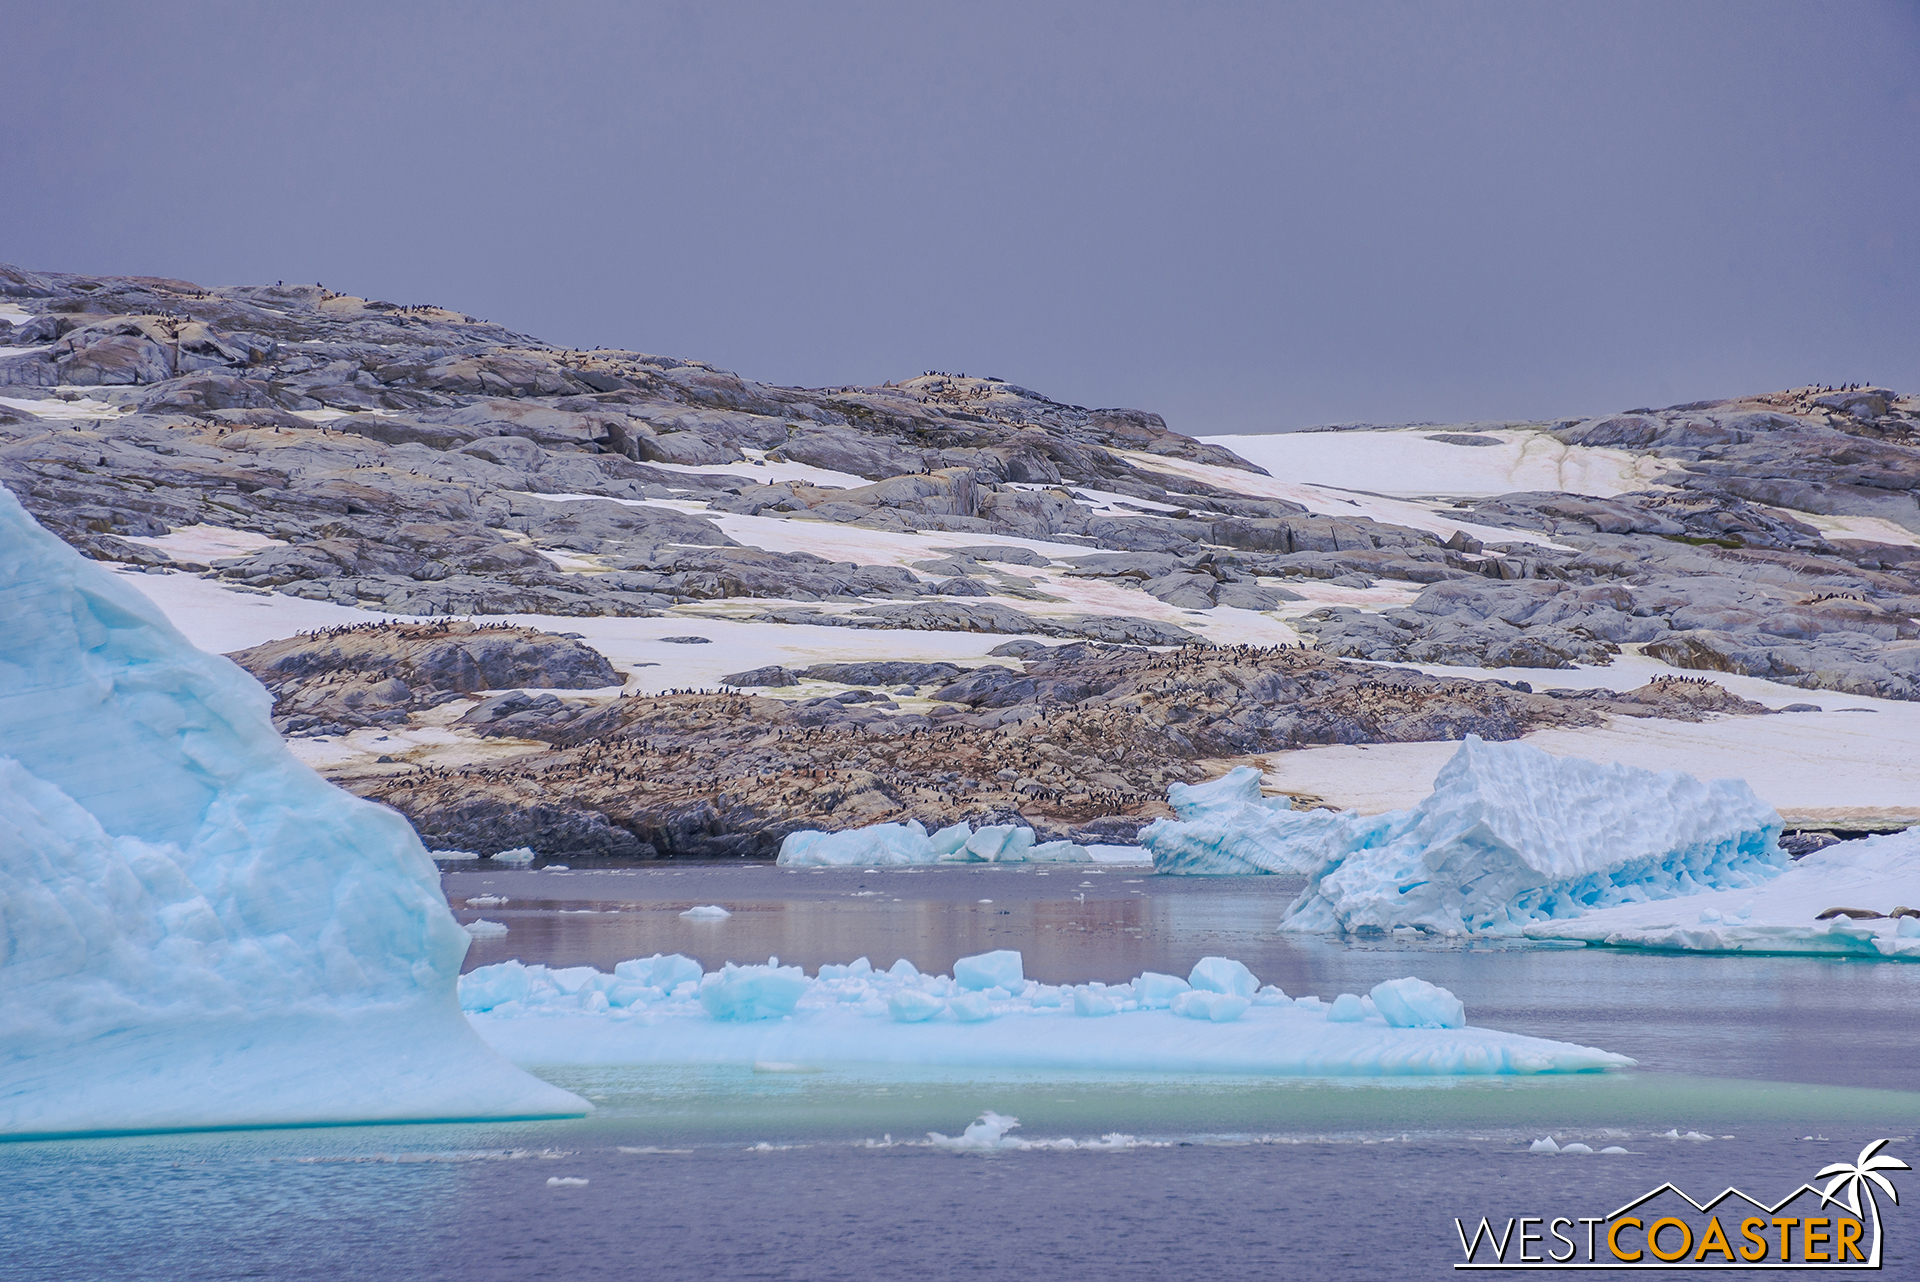 Pléneau Bay is also home to one of the largest gentoo penguin colonies around these parts.